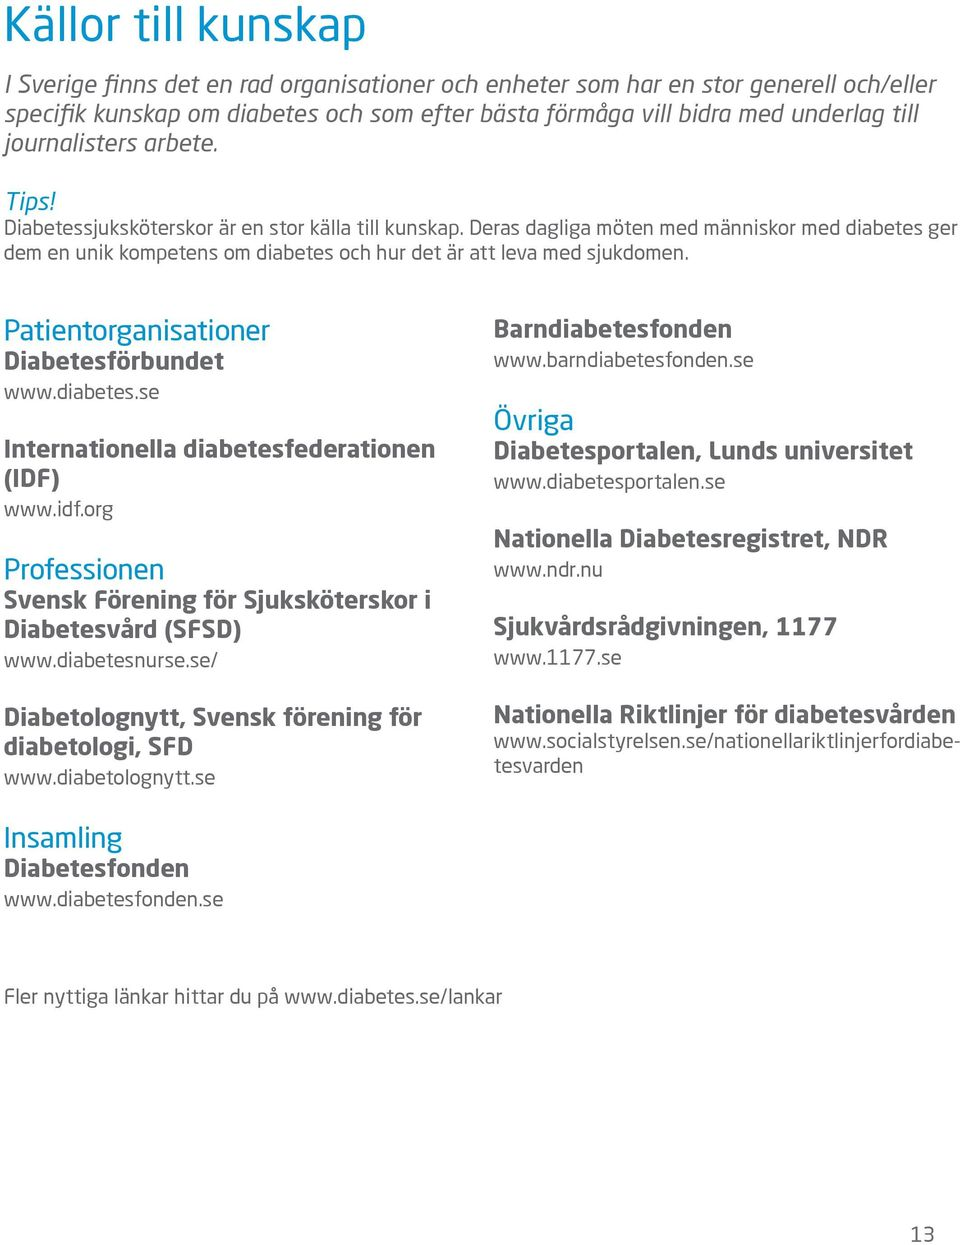 Deras dagliga möten med människor med diabetes ger dem en unik kompetens om diabetes och hur det är att leva med sjukdomen. Patientorganisationer Diabetesförbundet www.diabetes.se Internationella diabetesfederationen (IDF) www.